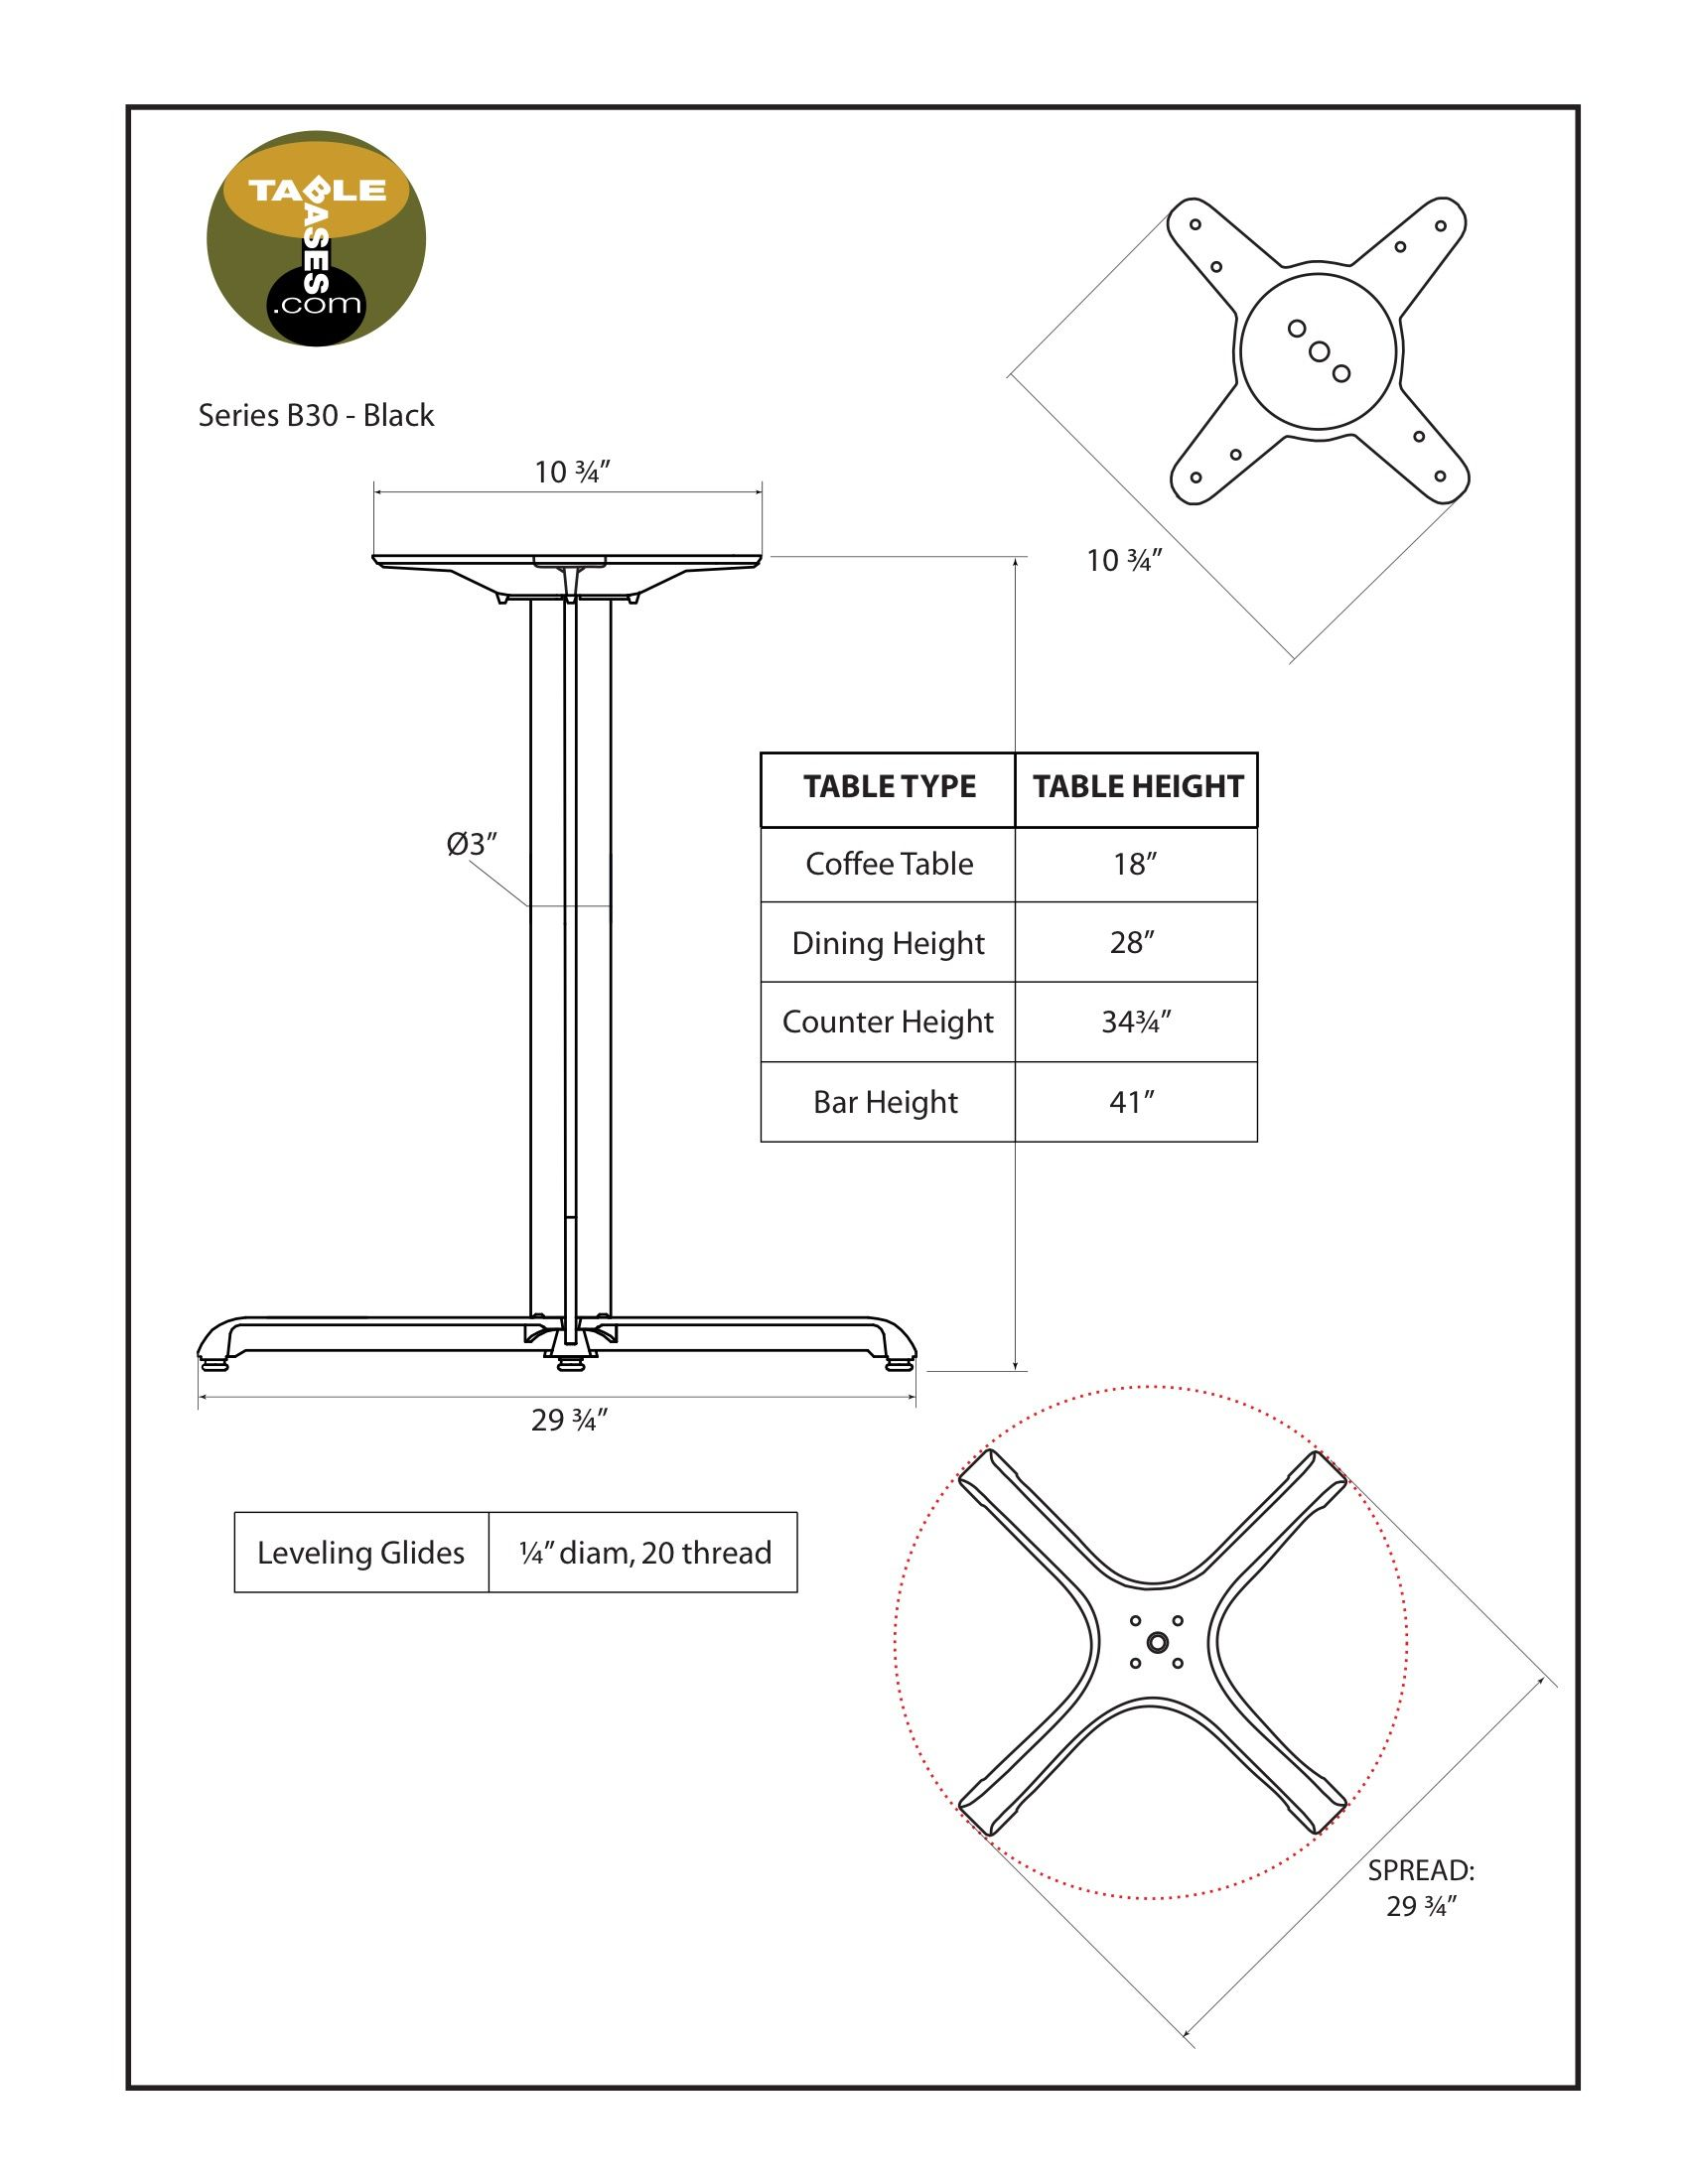 B30 Black Table Base - Specifications